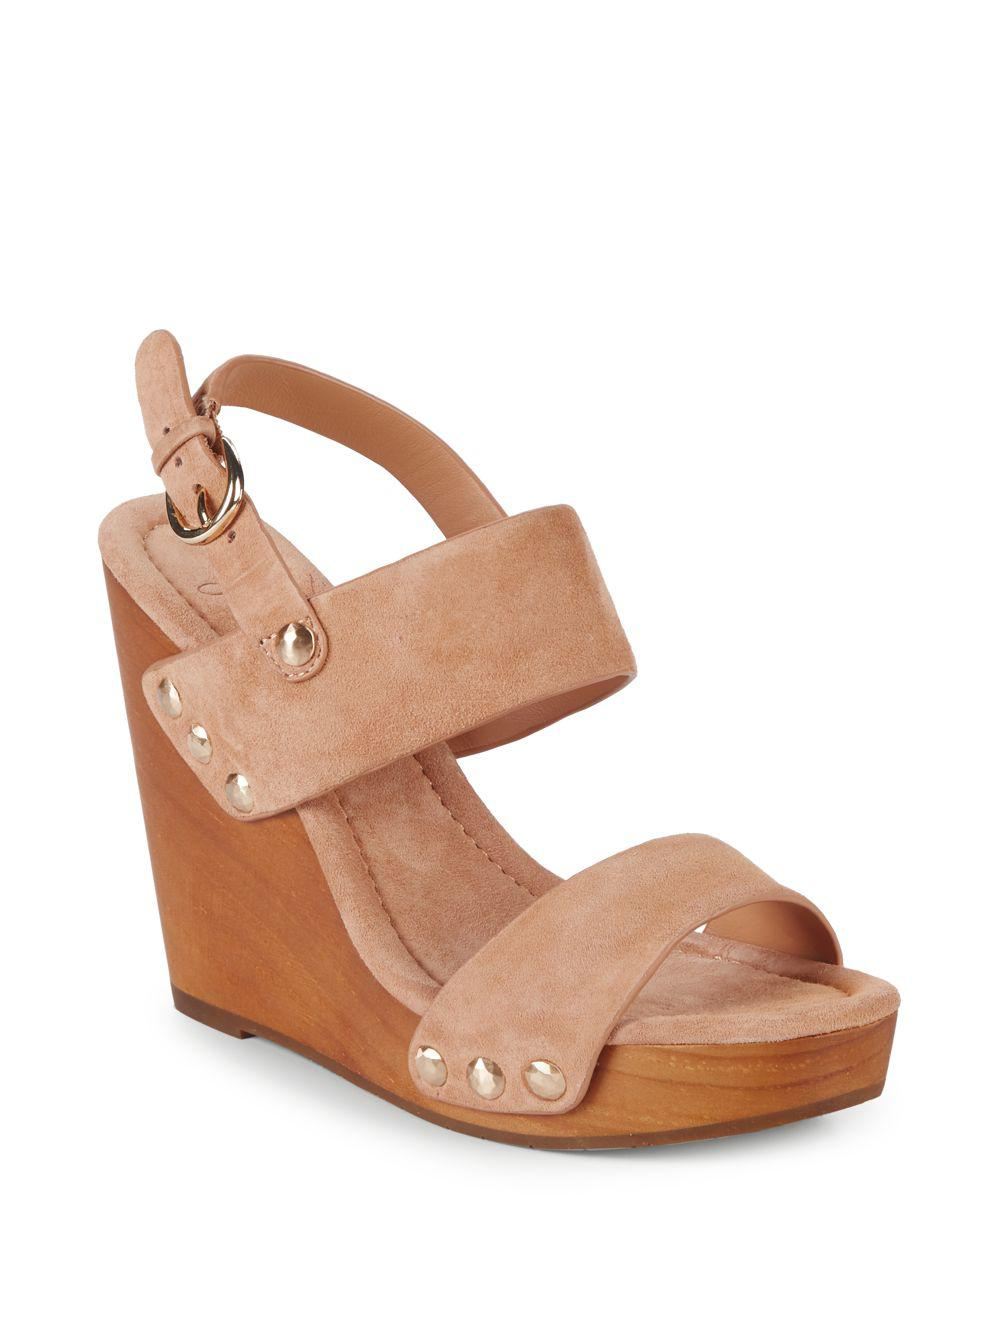 looking for for sale footlocker Joie Talia Suede Wedges deals for sale 1lKuO5Oi